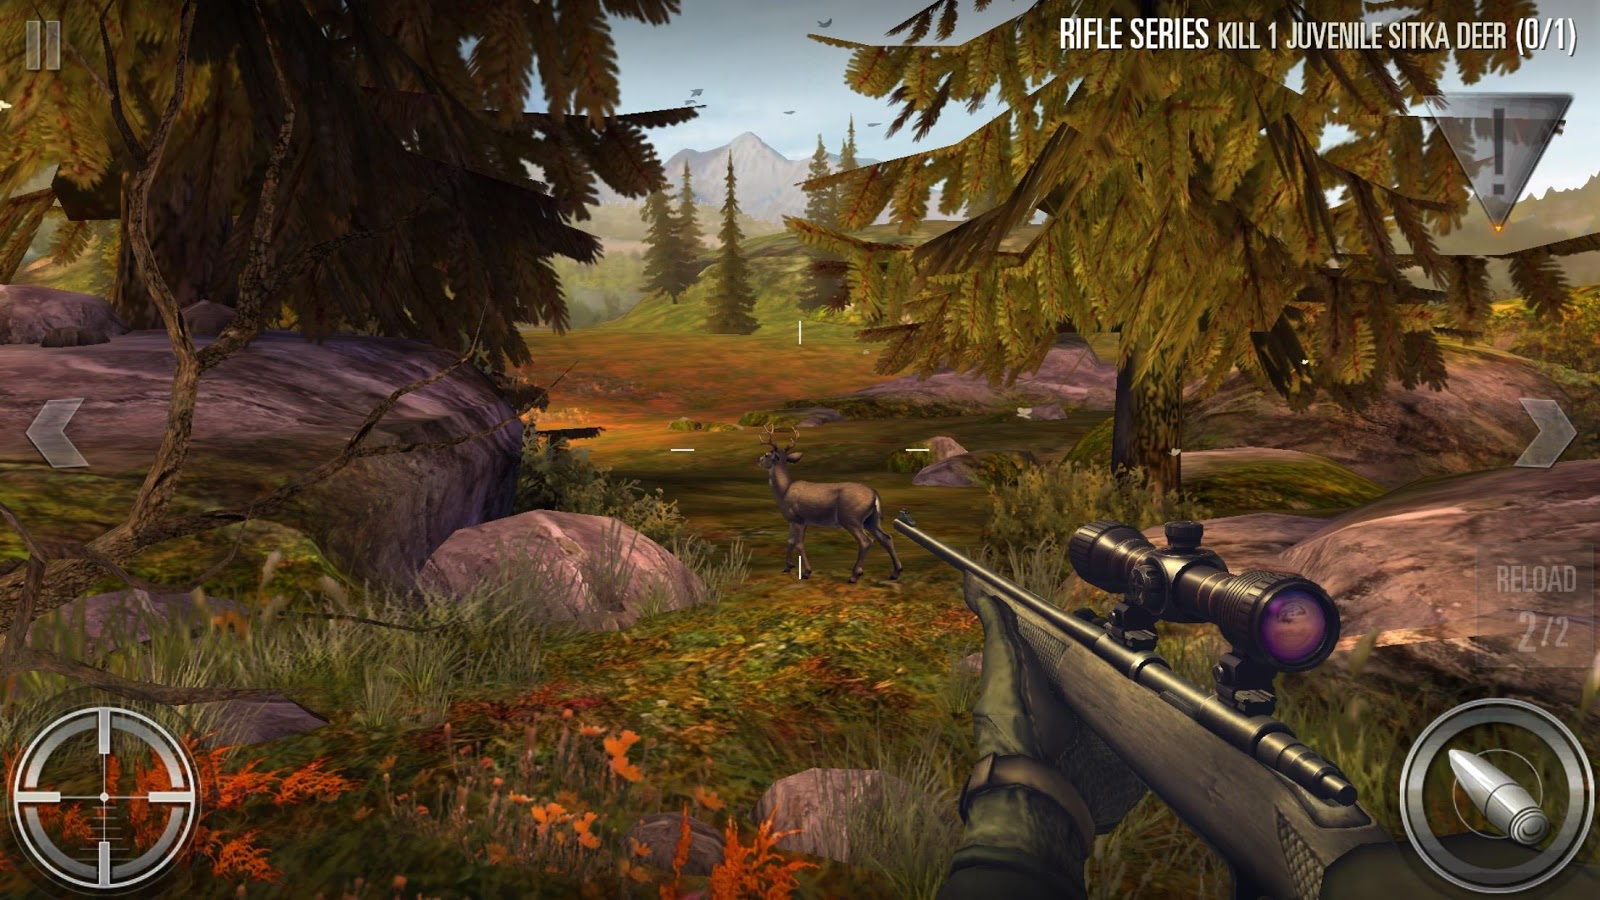 DEER HUNTER 2017 Screenshot 13